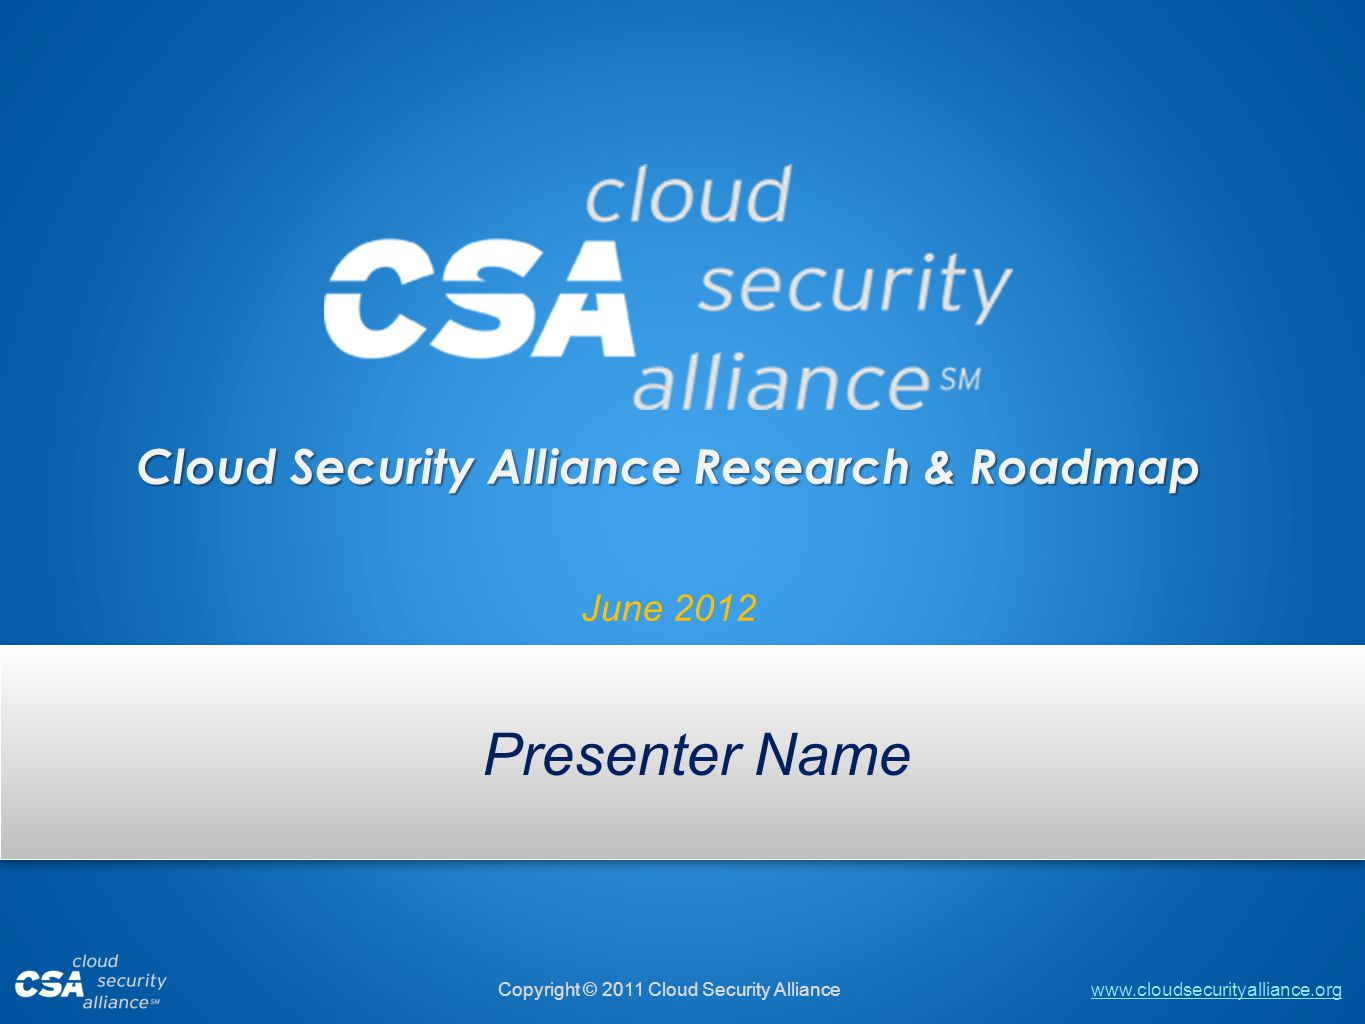 www.cloudsecurityalliance.org Copyright © 2012 Cloud Security Alliance www.cloudsecurityalliance.org Copyright © 2012 Cloud Security Alliance Global, not-for-profit organization Over 35,678 individual members, 123 corporate members, 20 affiliate members, 64 chapters worldwide Building best practices and a trusted cloud ecosystem Agile philosophy, rapid development of applied research GRC: Balance compliance with risk management Reference models: build using existing standards Identity: a key foundation of a functioning cloud economy Champion interoperability Enable innovation Advocacy of prudent public policy To promote the use of best practices for providing security assurance within Cloud Computing, and provide education on the uses of Cloud Computing to help secure all other forms of computing.